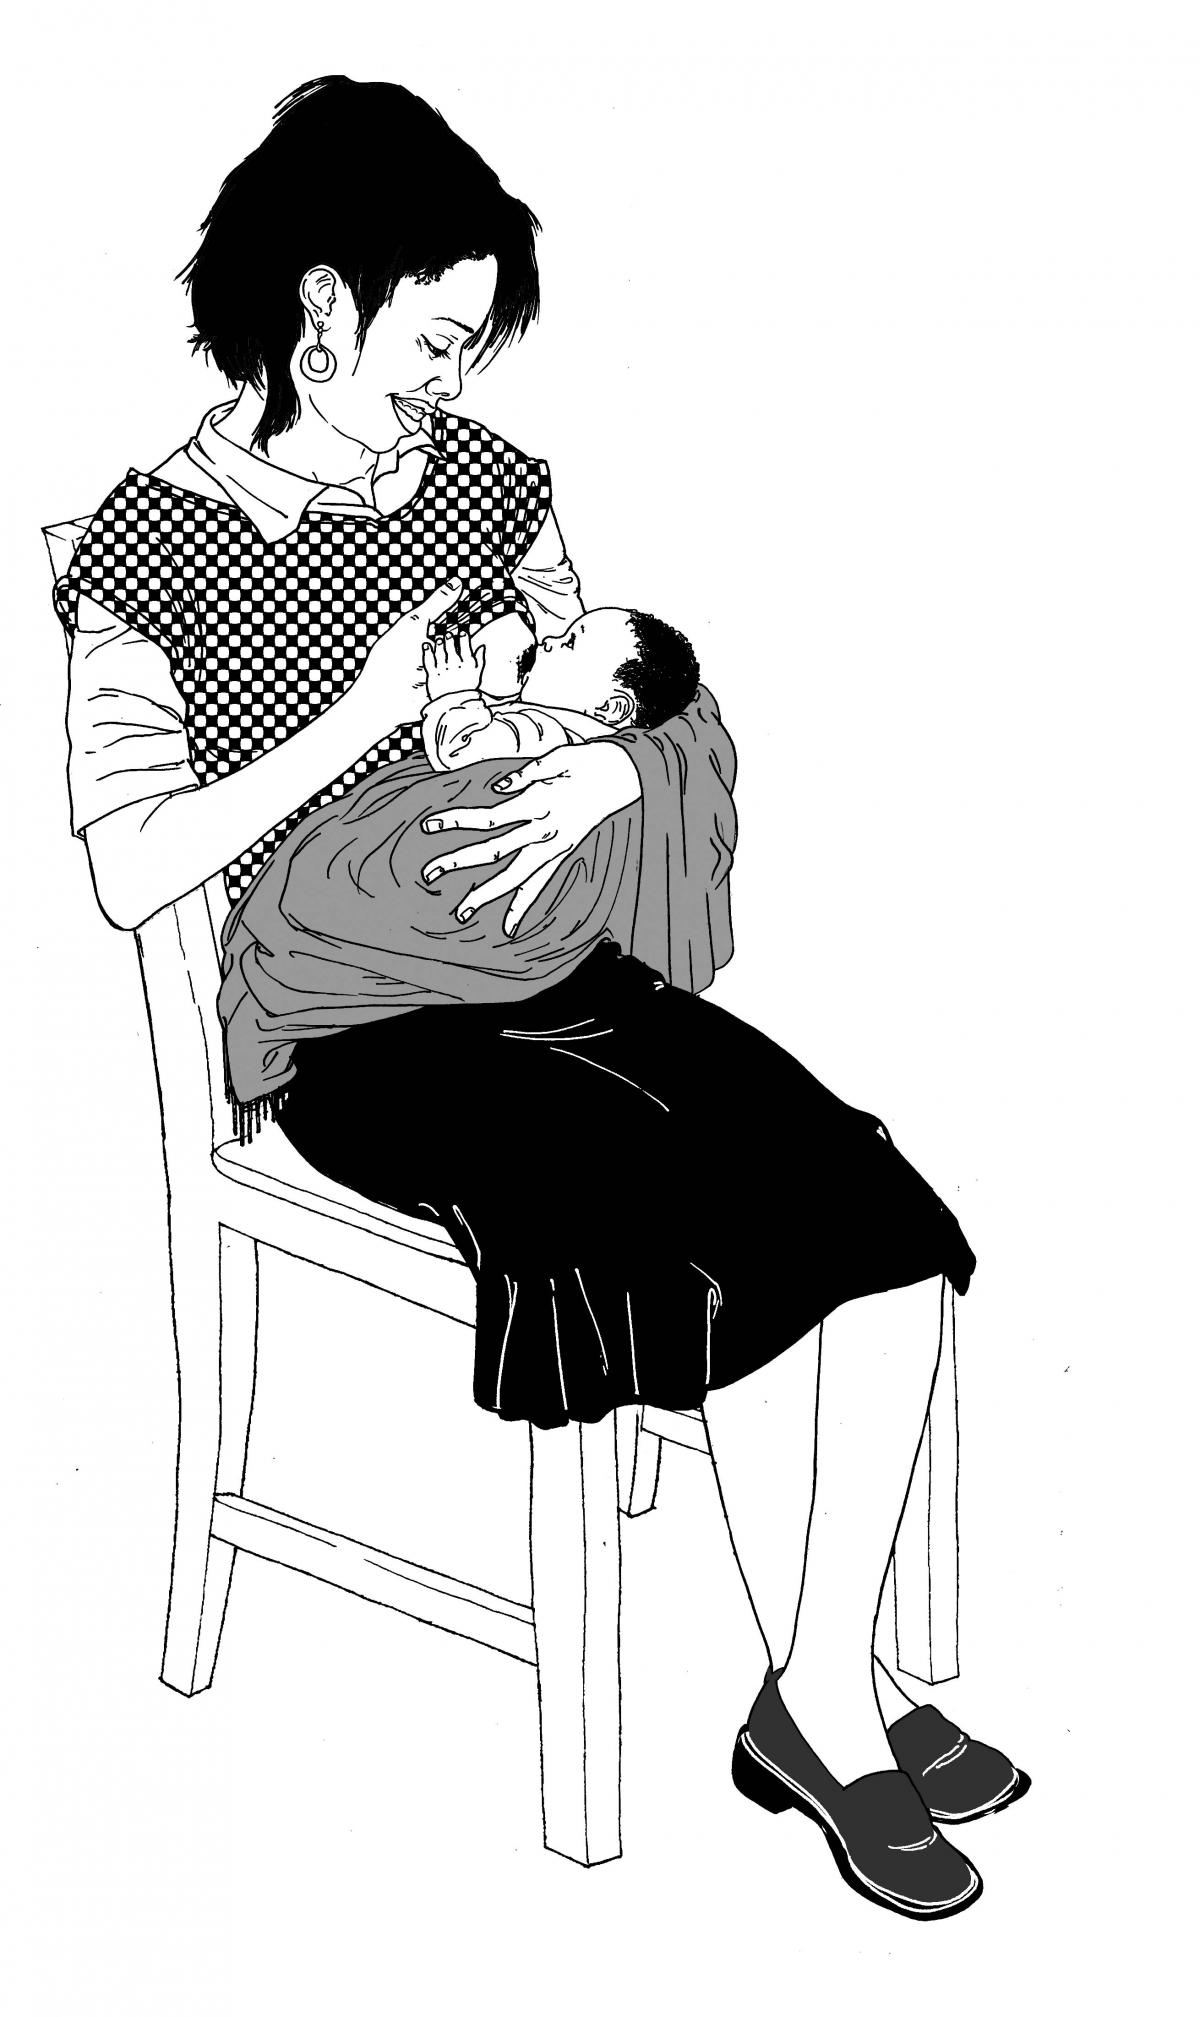 Breastfeeding - Exclusive breastfeeding - sitting - 02 - Non-country specific